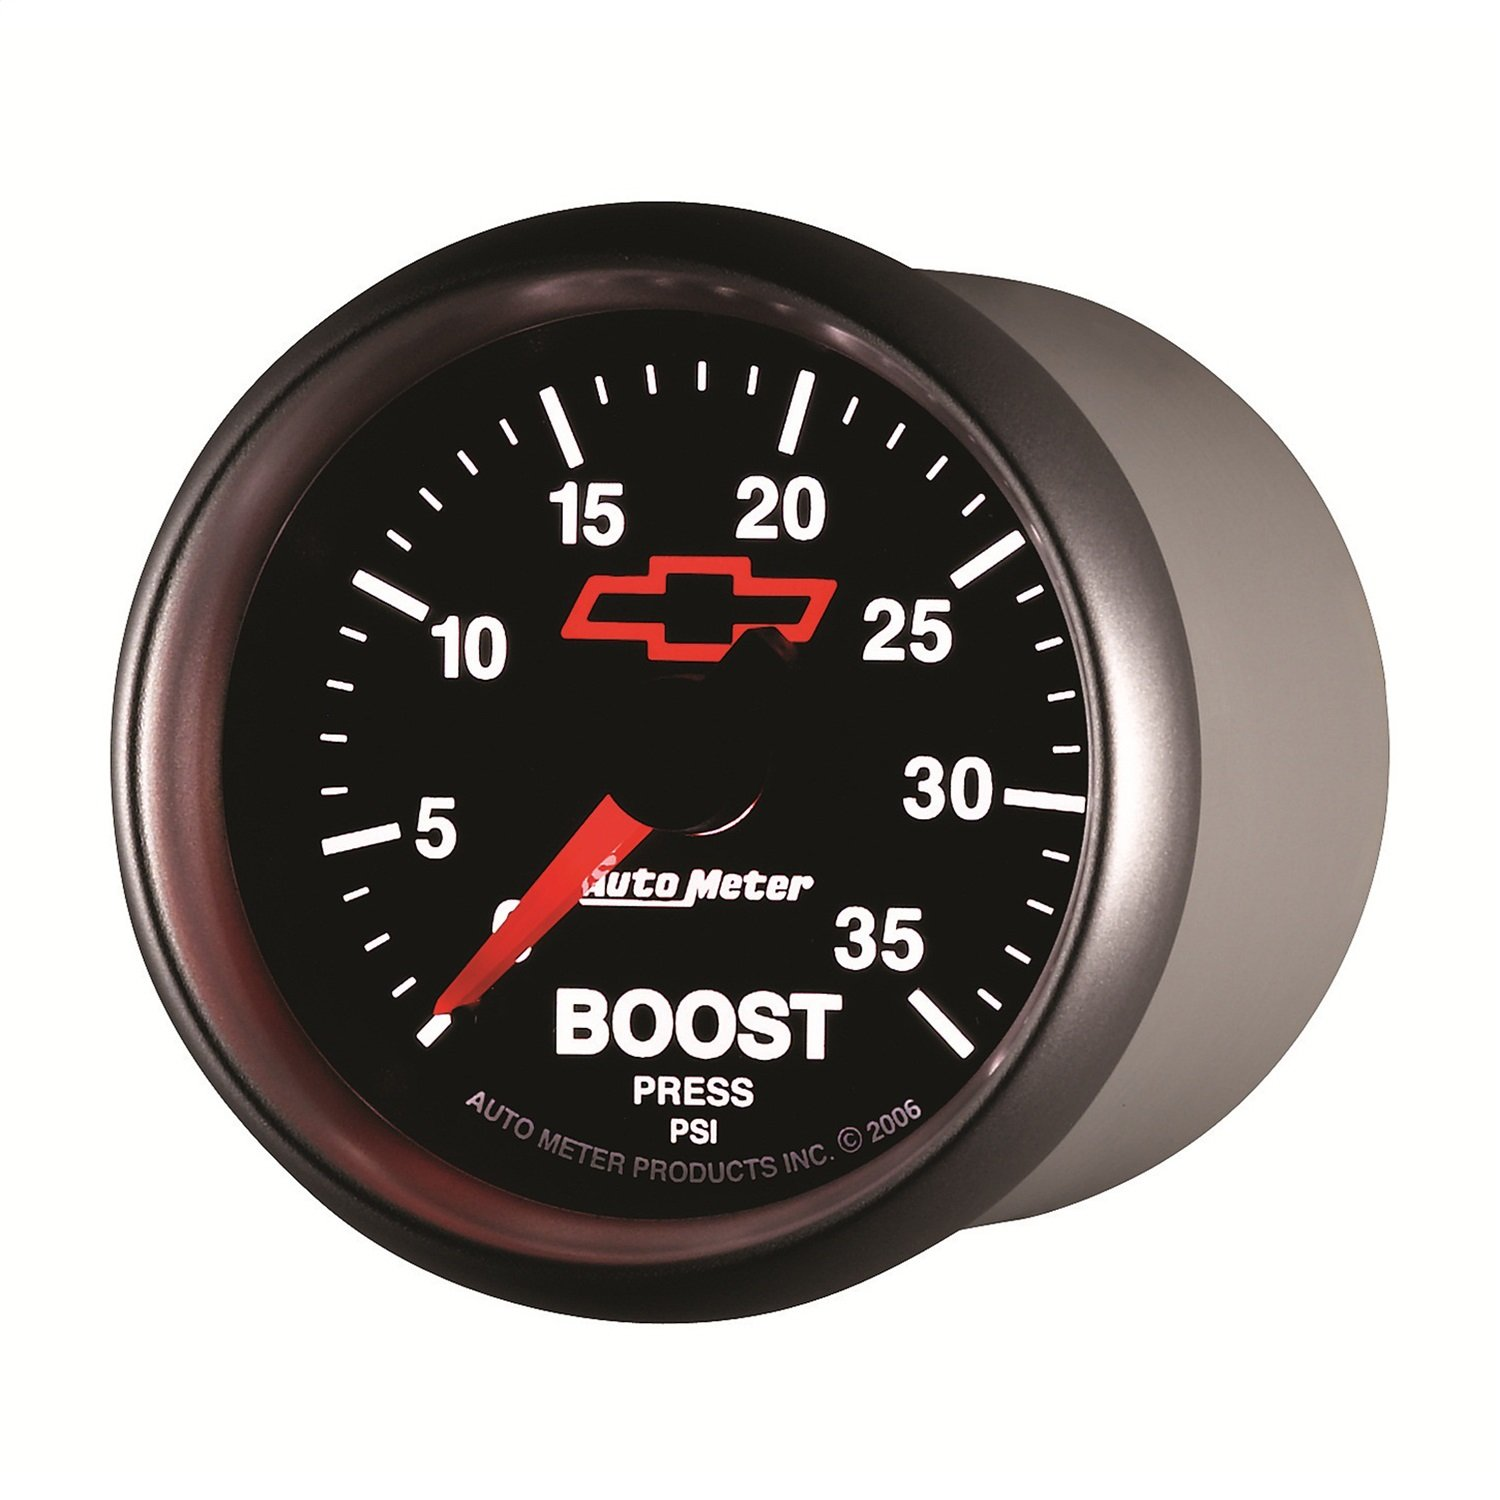 Auto Meter 3604-00406 GM Performance Parts Red 2-1/16' 0-35 PSI Mechanical Boost Gauge